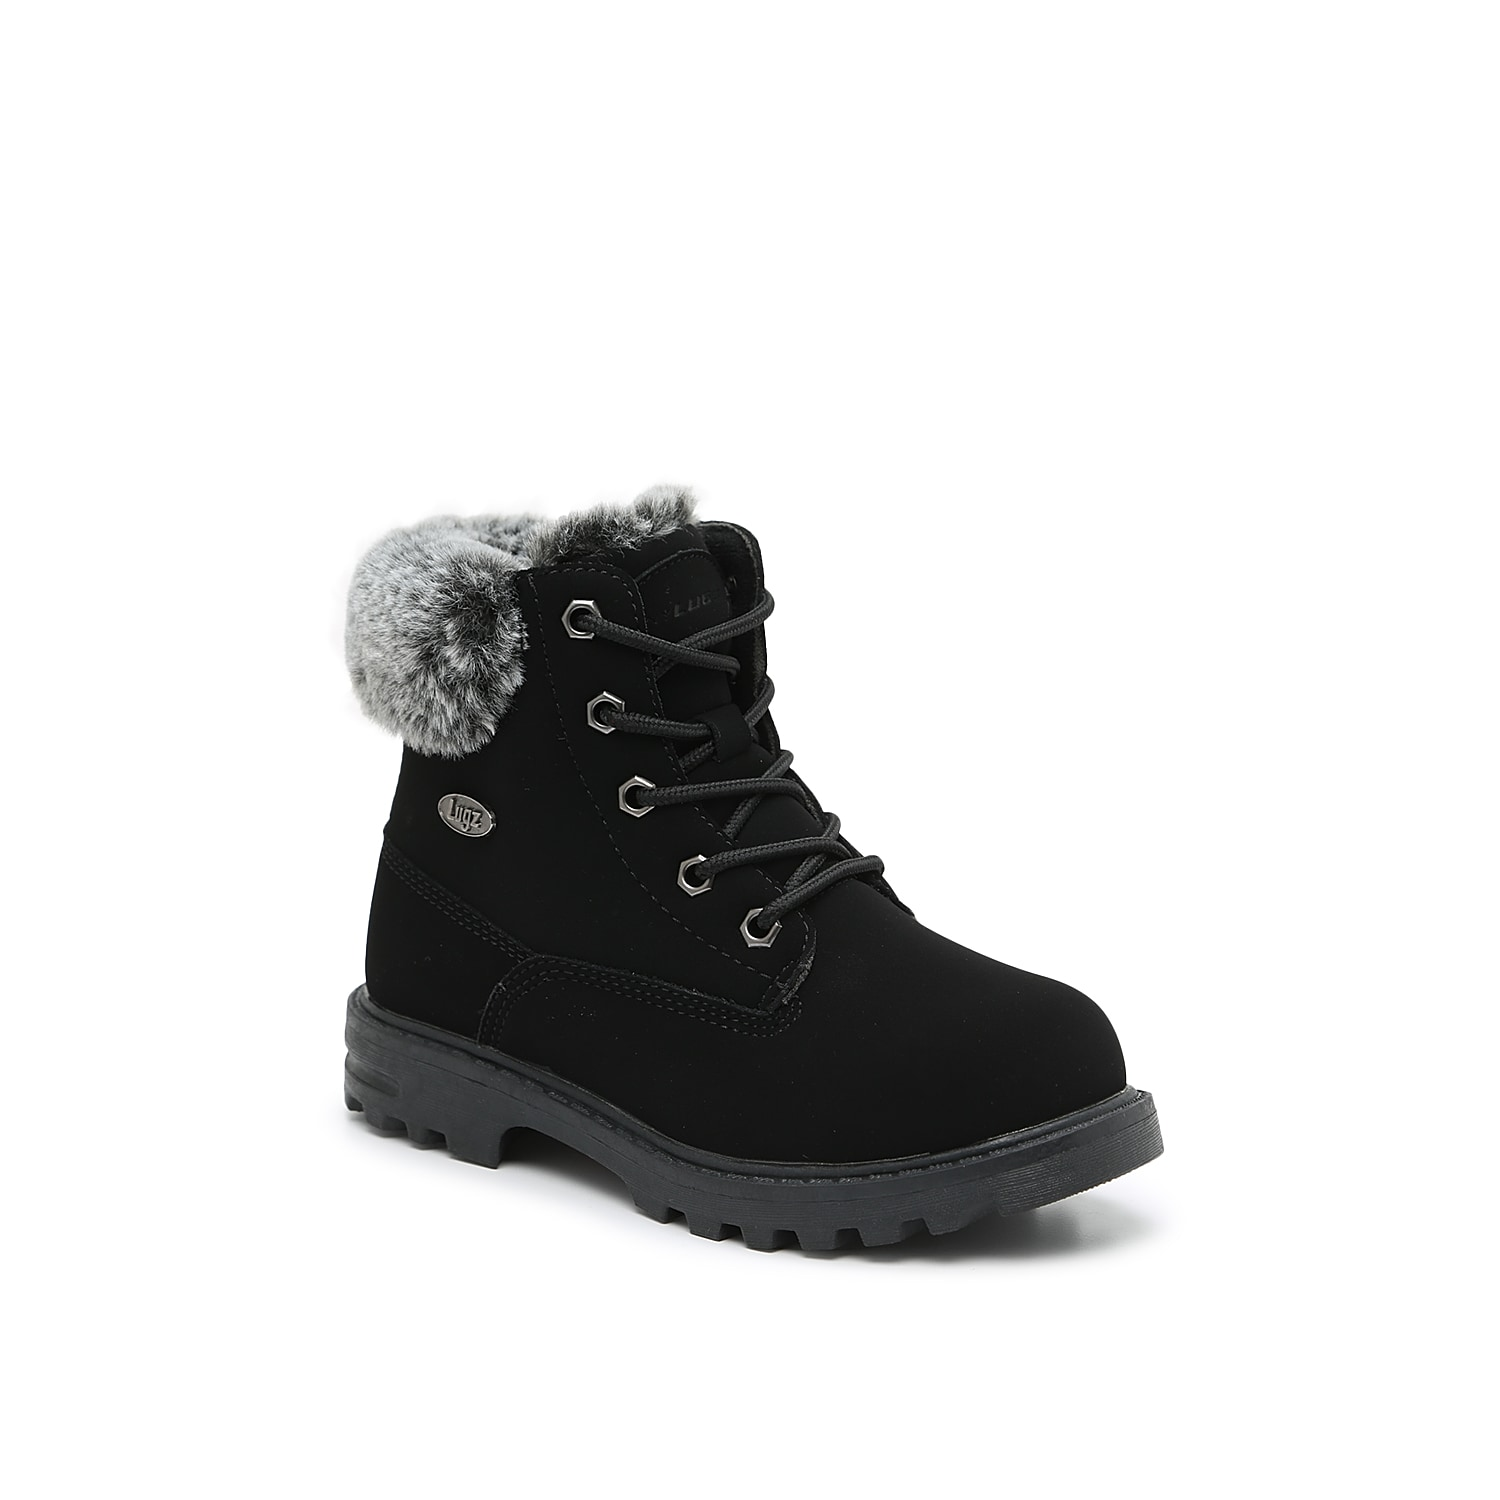 The Empire Hi furry combat boot from Lugz gives your little one a cozy winter ensemble! This lace-up features an adorable faux fur collar and lining that will keep her warm and stylish all season long. Not sure which size to order? Clickhereto check out our Kids' Measuring Guide! For more helpful tips and sizing FAQs, clickhere.